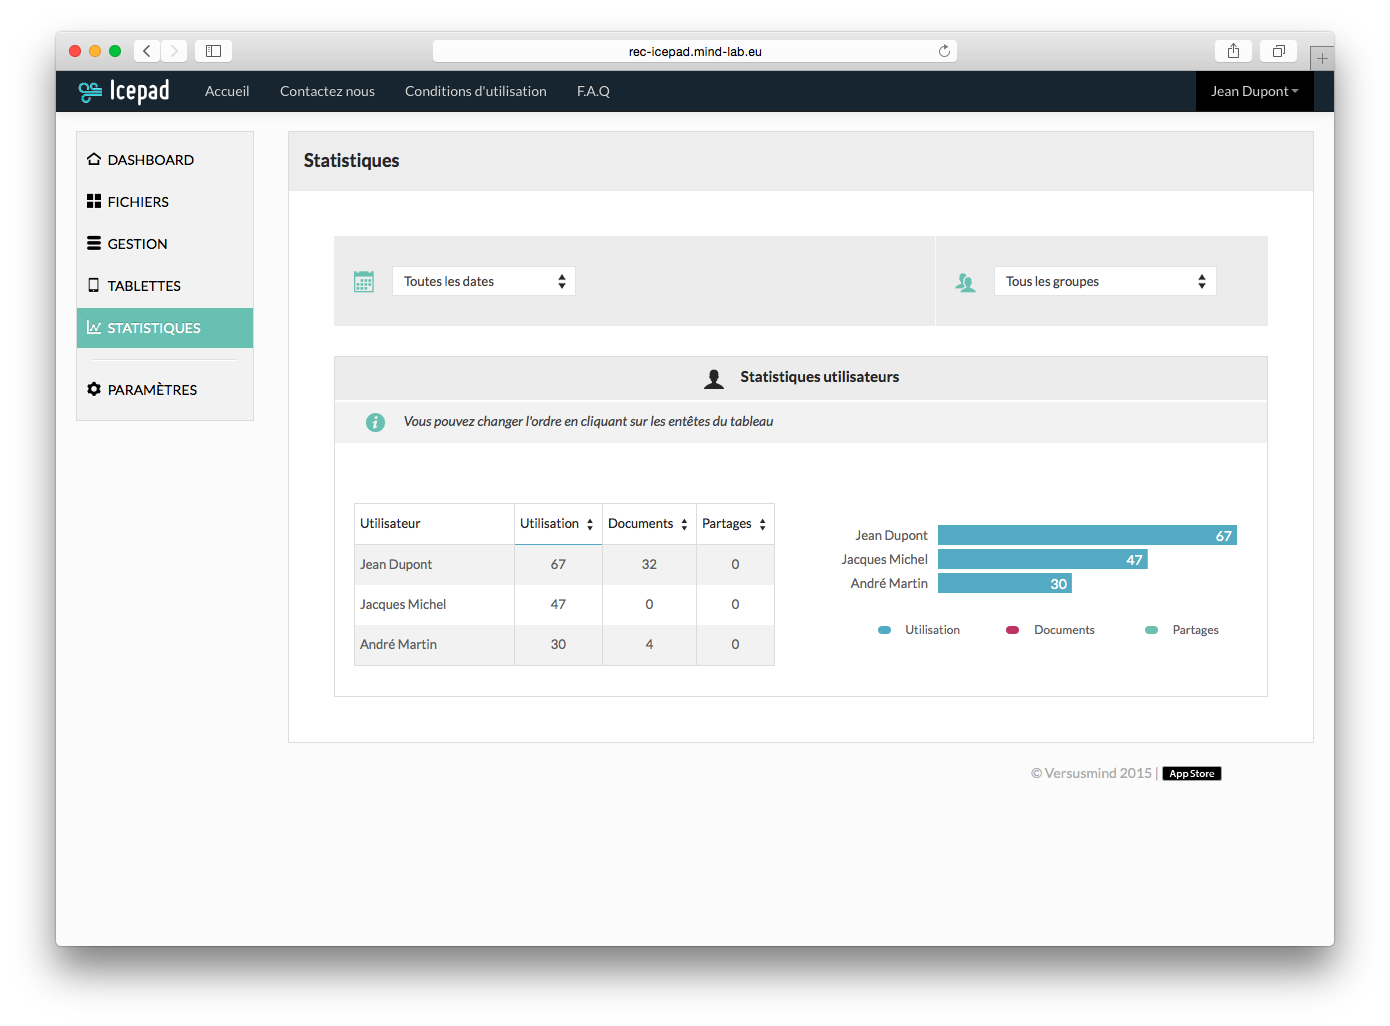 IcePad: Strict control of access to servers, Dashboards, Shared Documents